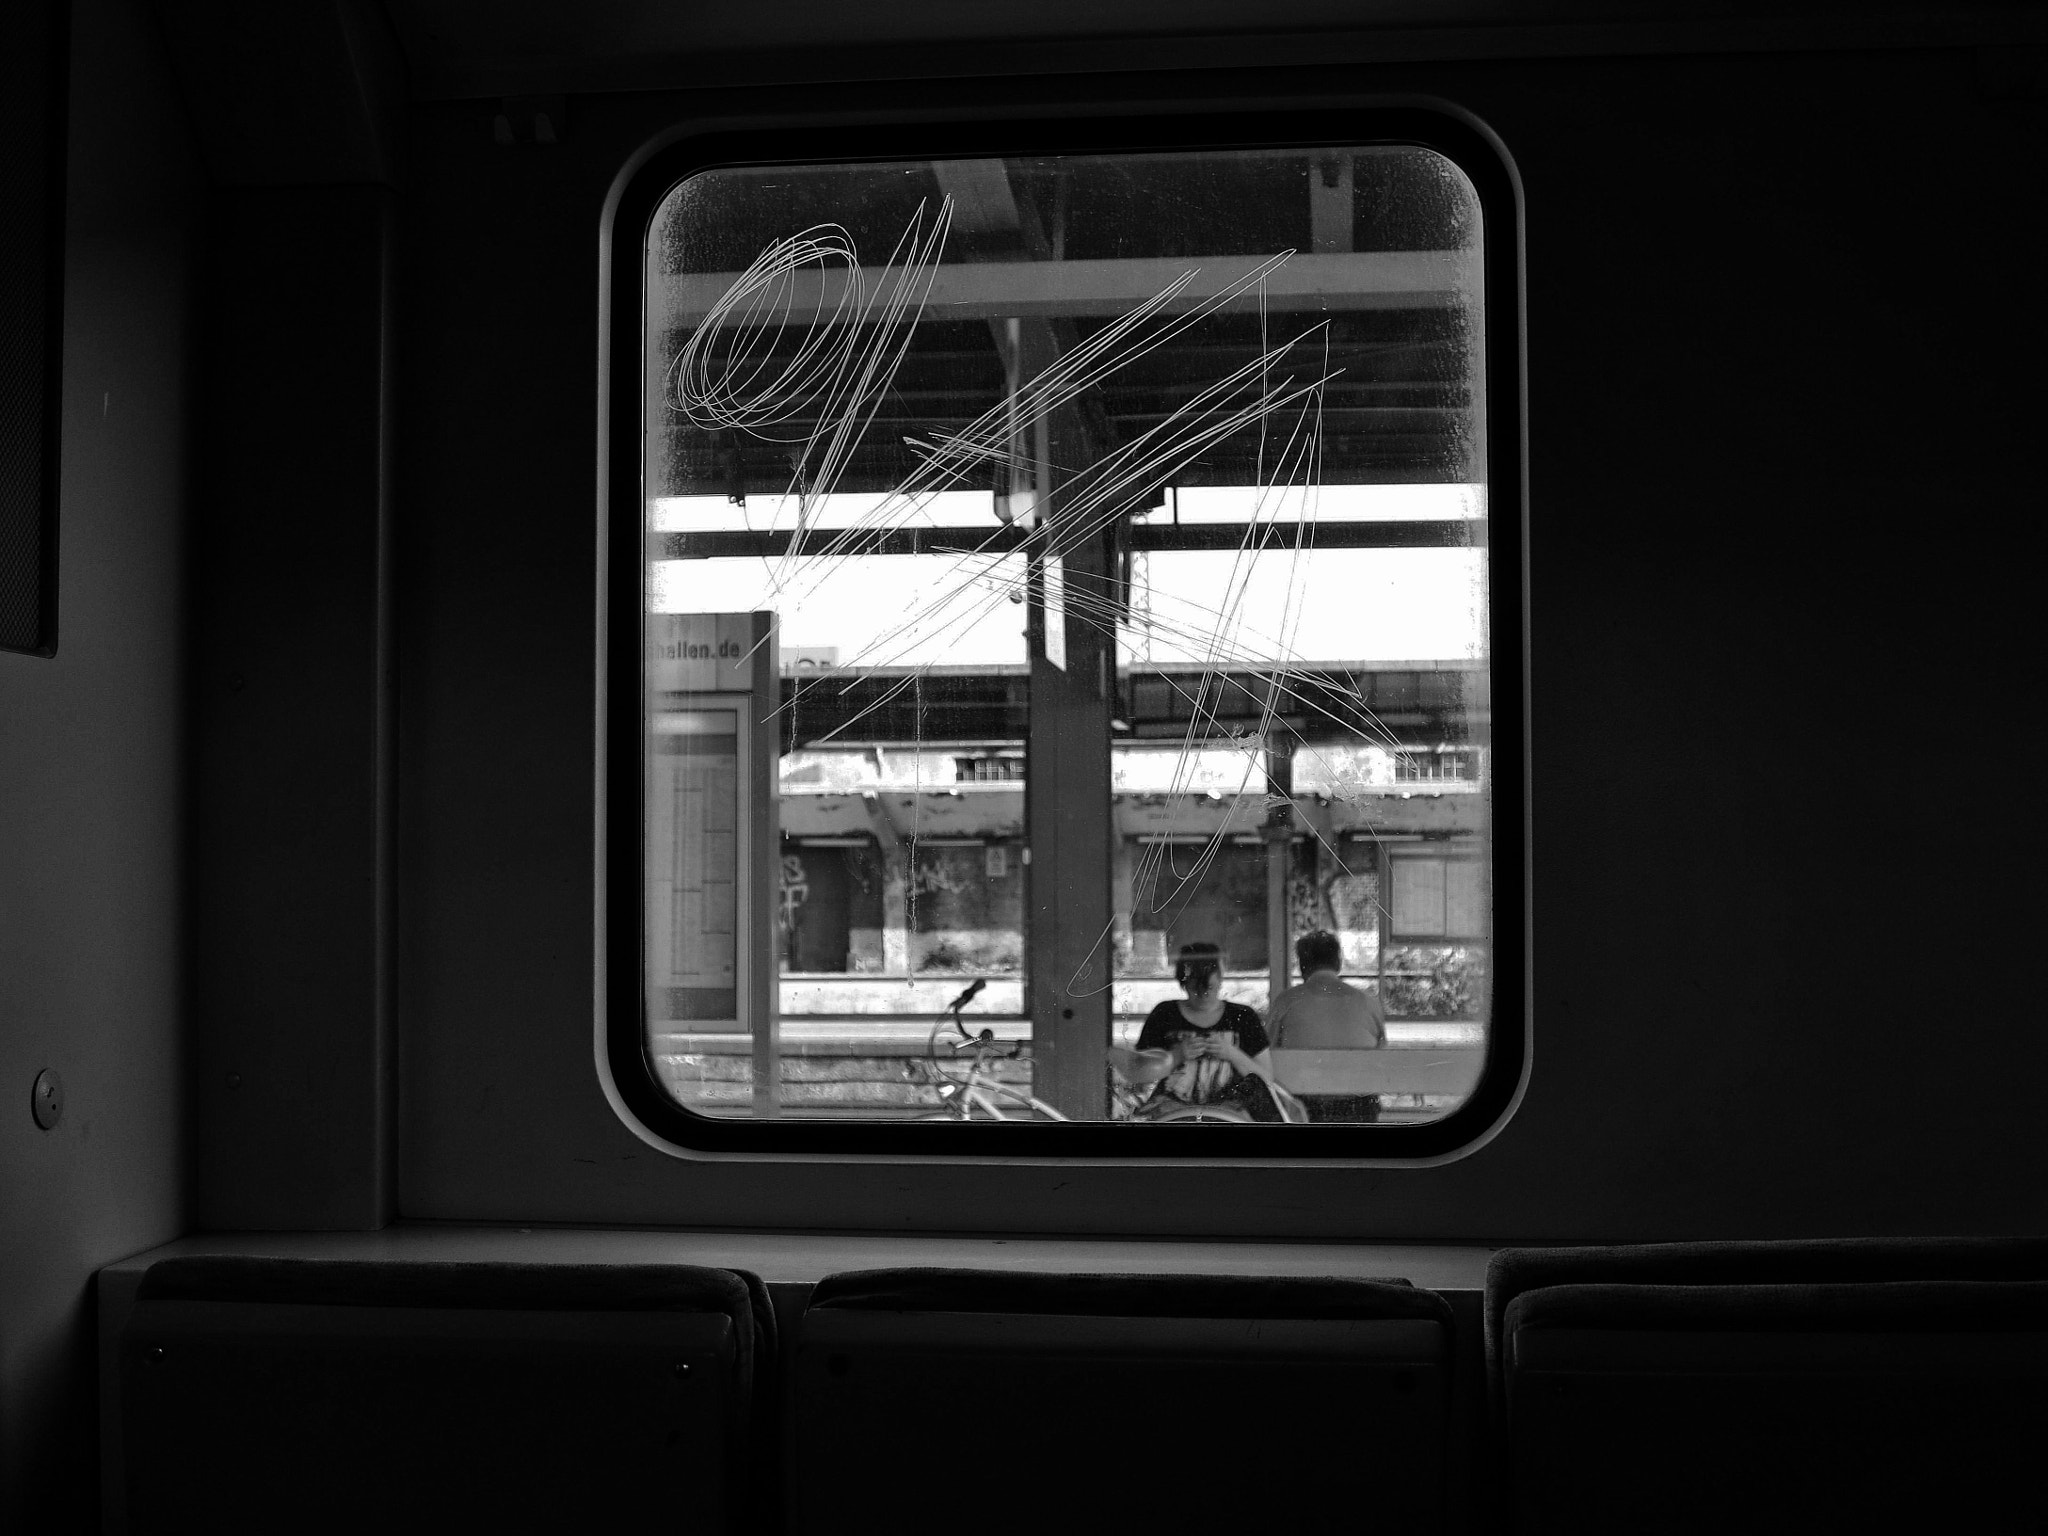 Photograph going by train by Georgie Pauwels on 500px